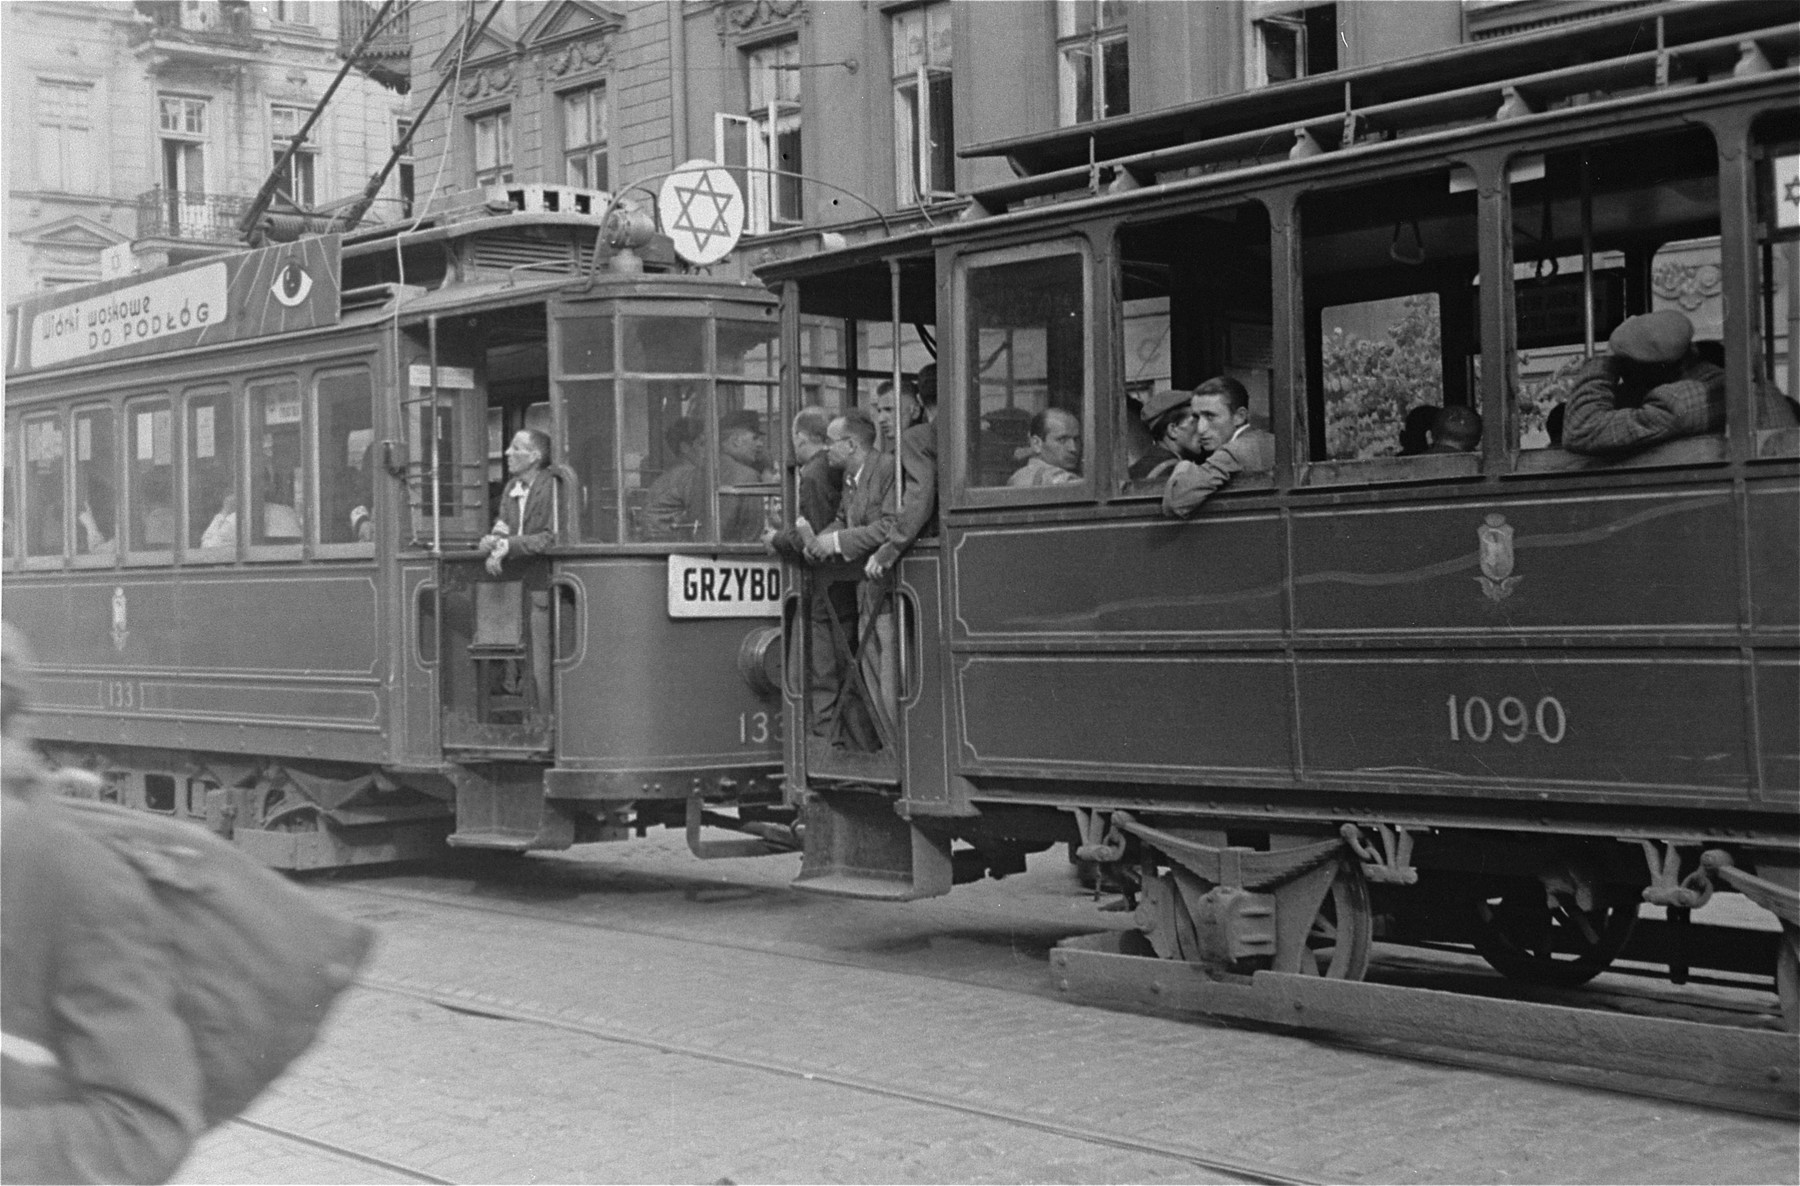 Jews ride in a streetcar marked with a Jewish star in the Warsaw ghetto.